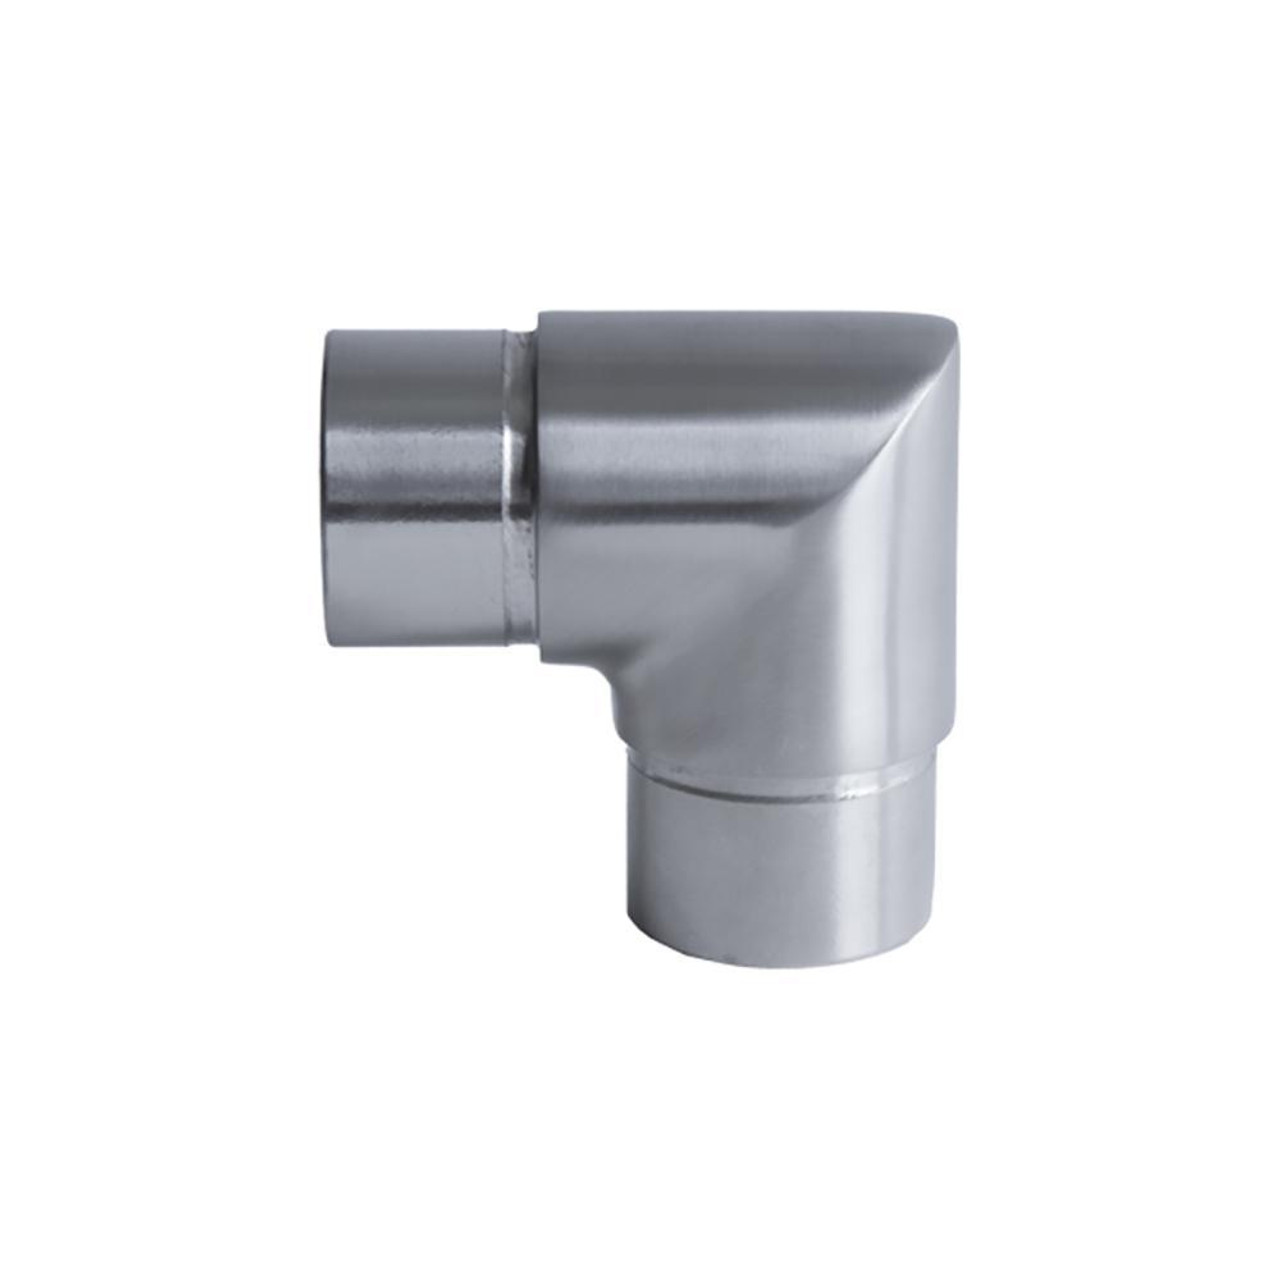 90 Degree Elbow for 42.4 mm Round Handrail